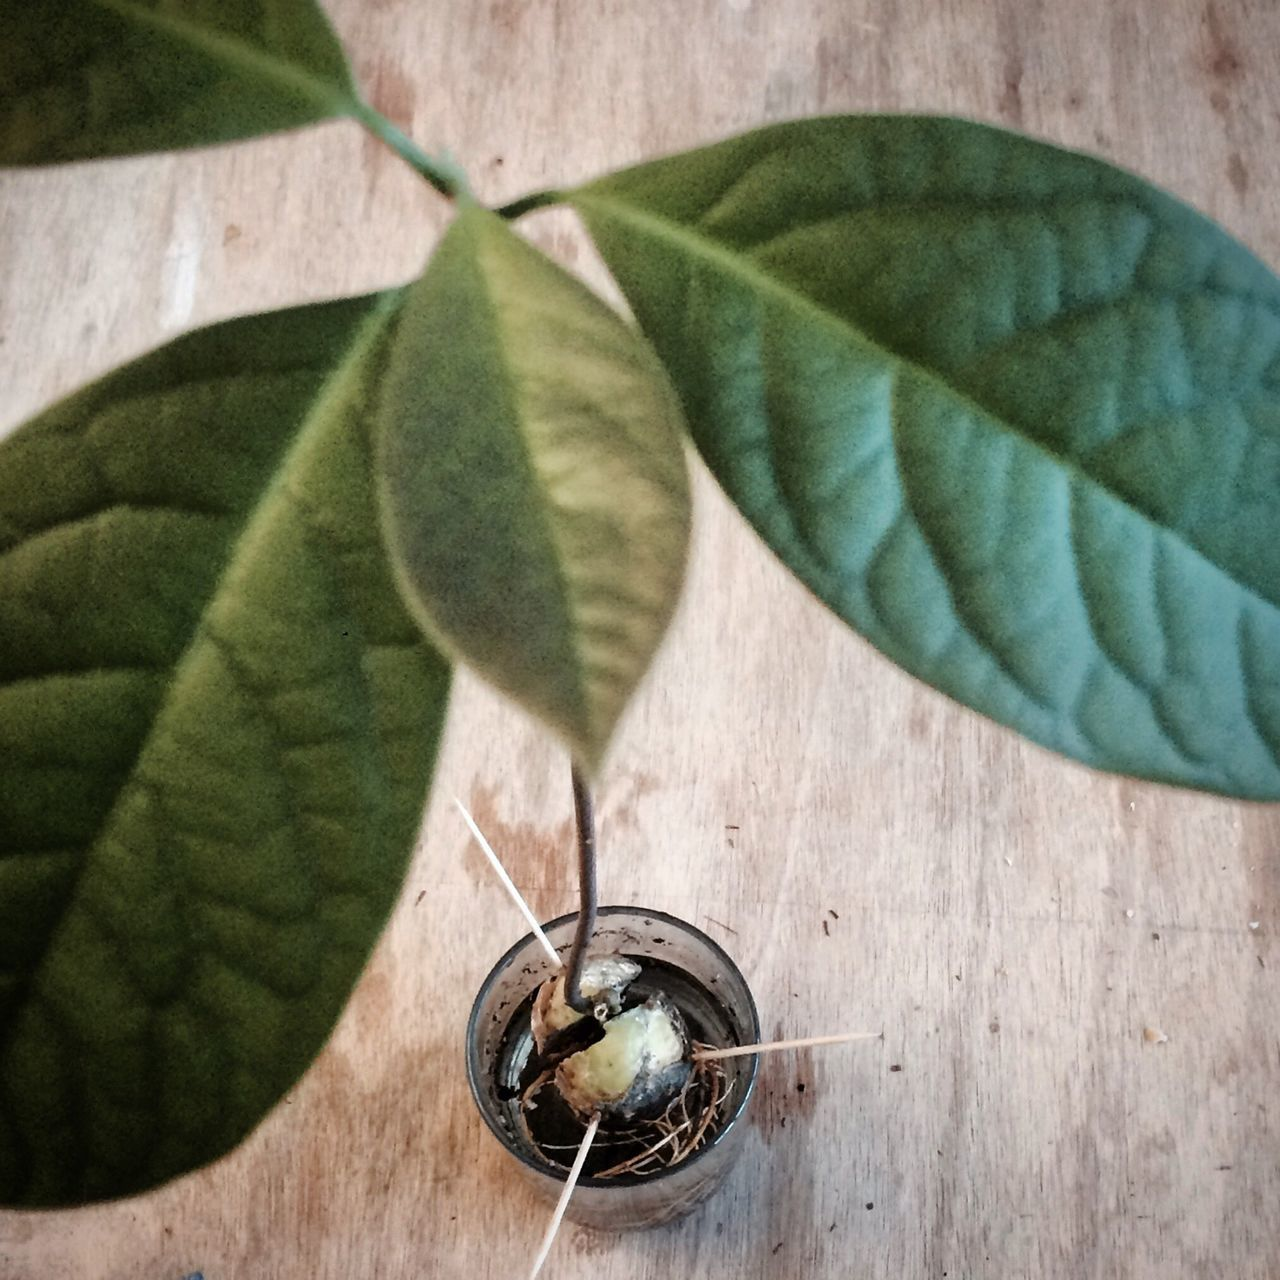 Leaf Plant No People Day Close-up Nature Indoors  Avocado Avocadotree Urbanjungle Blogger Plants Plants 🌱